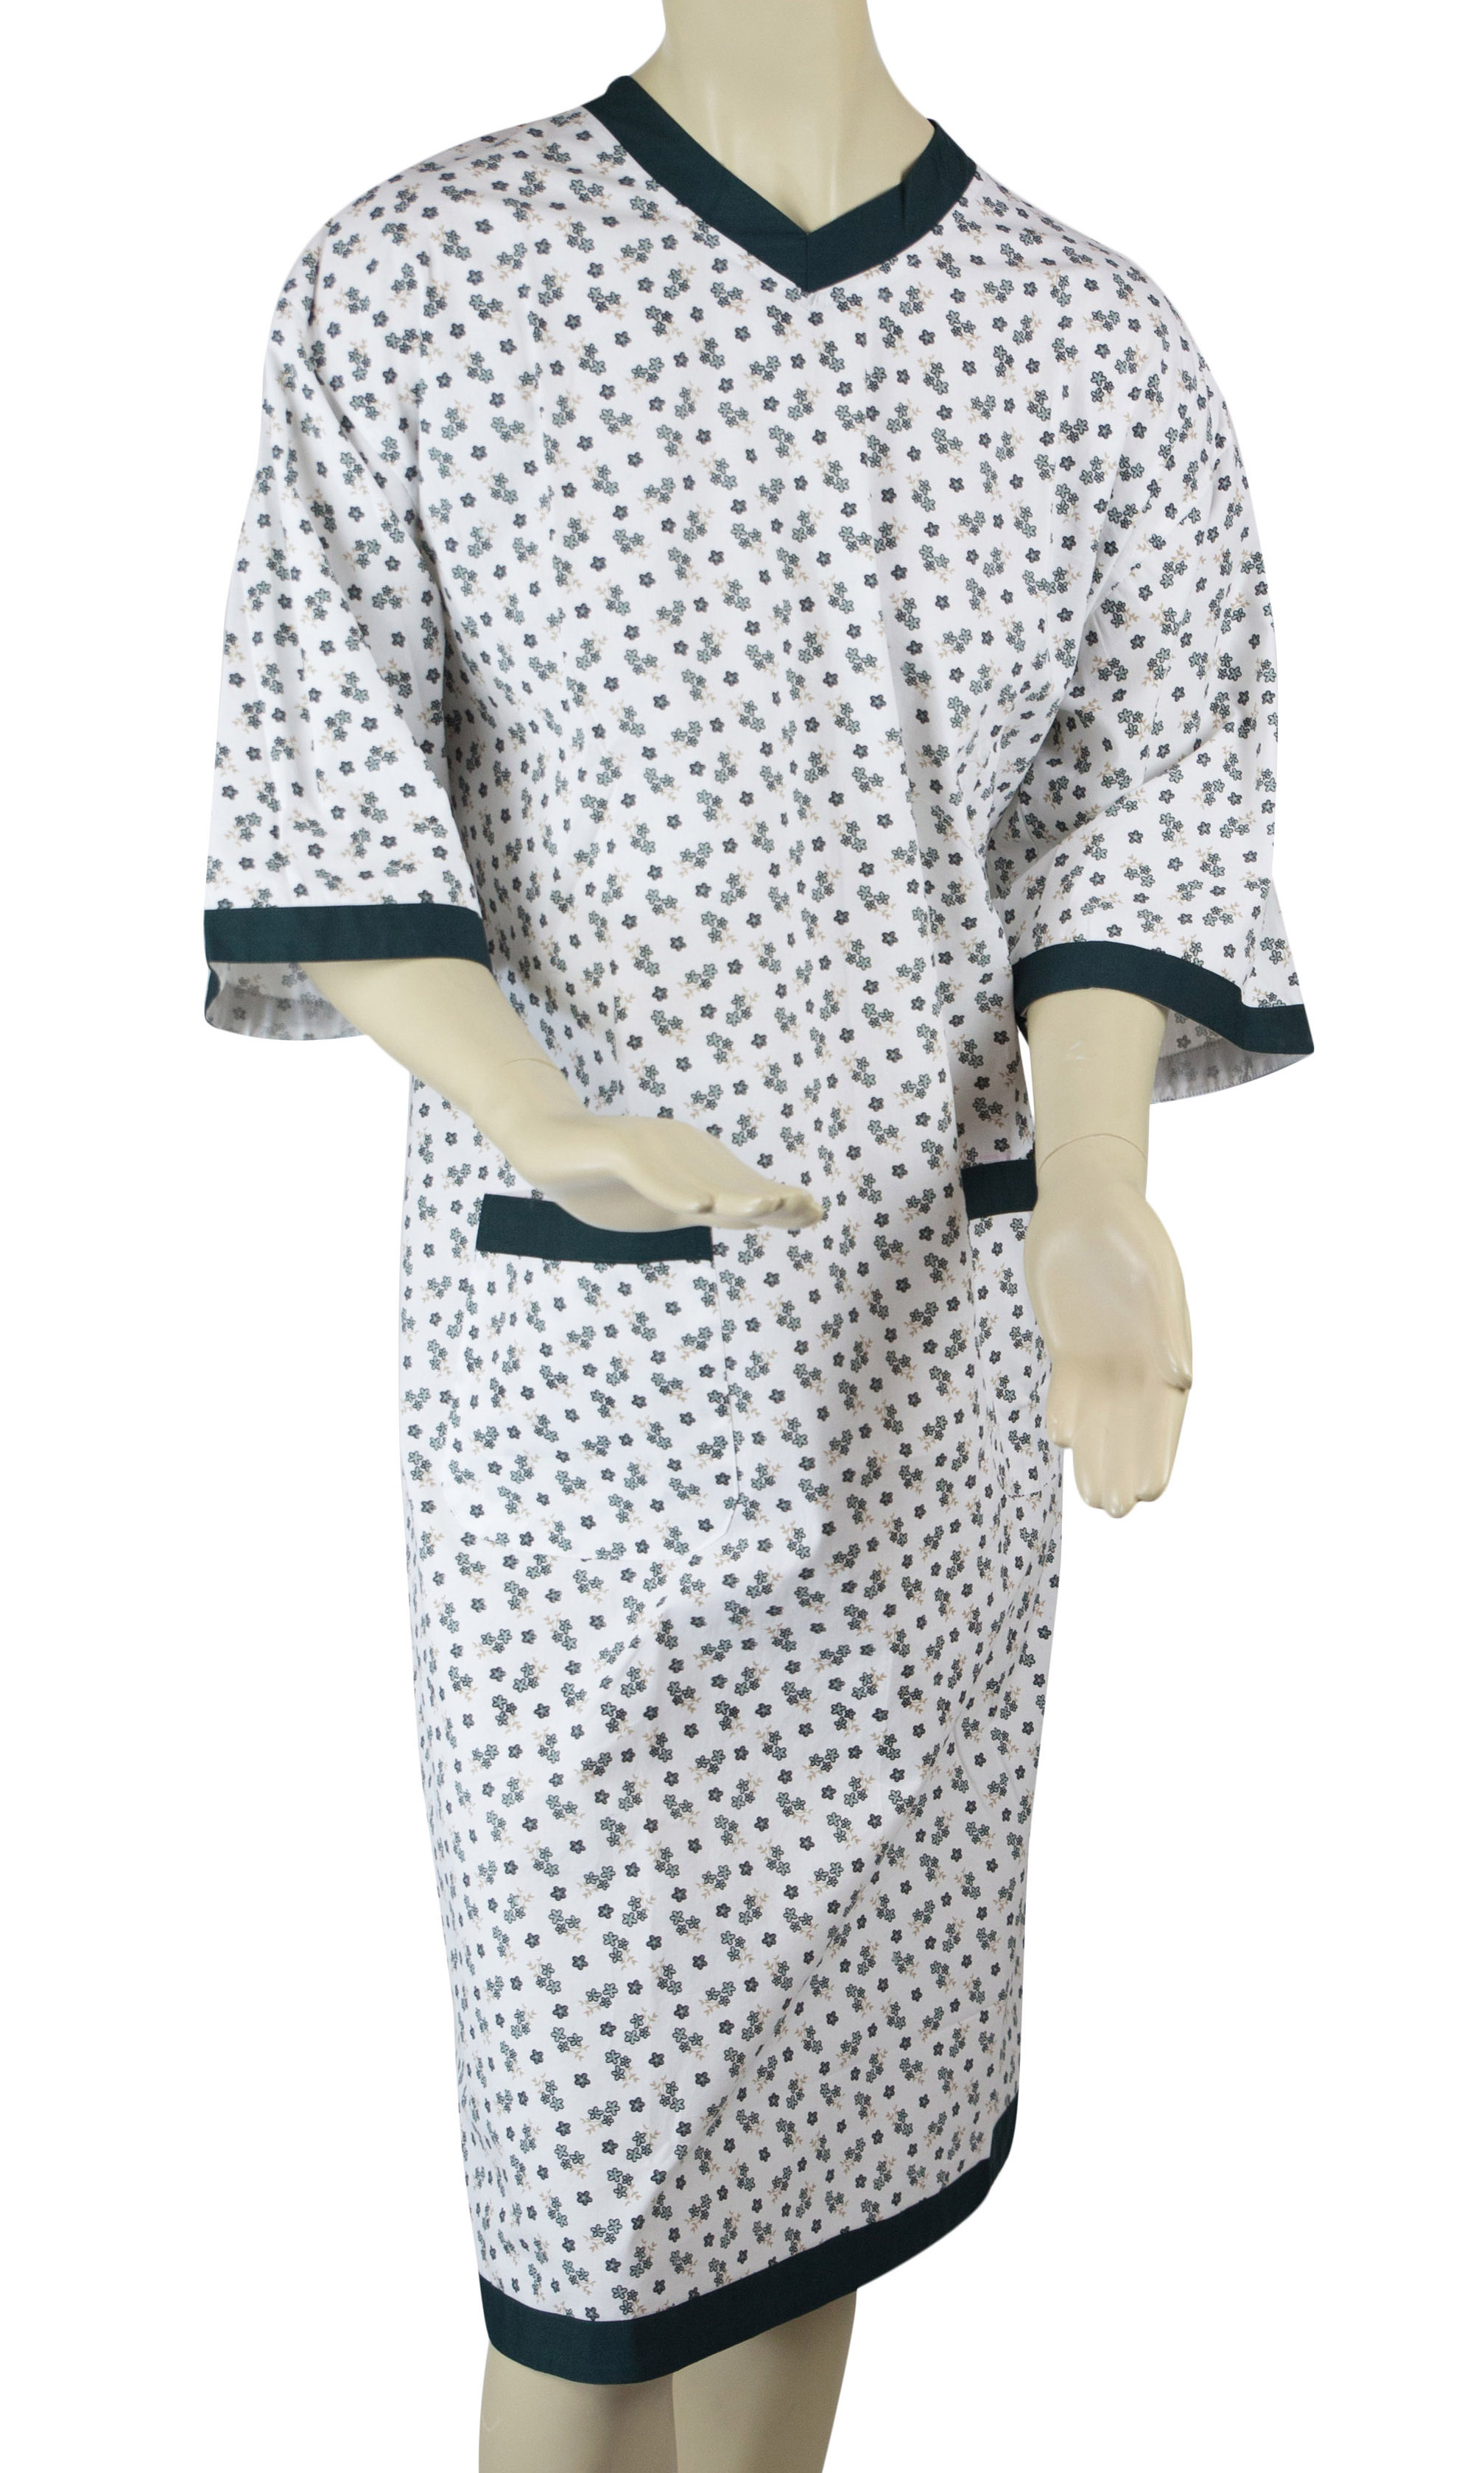 PatientGown-SP27